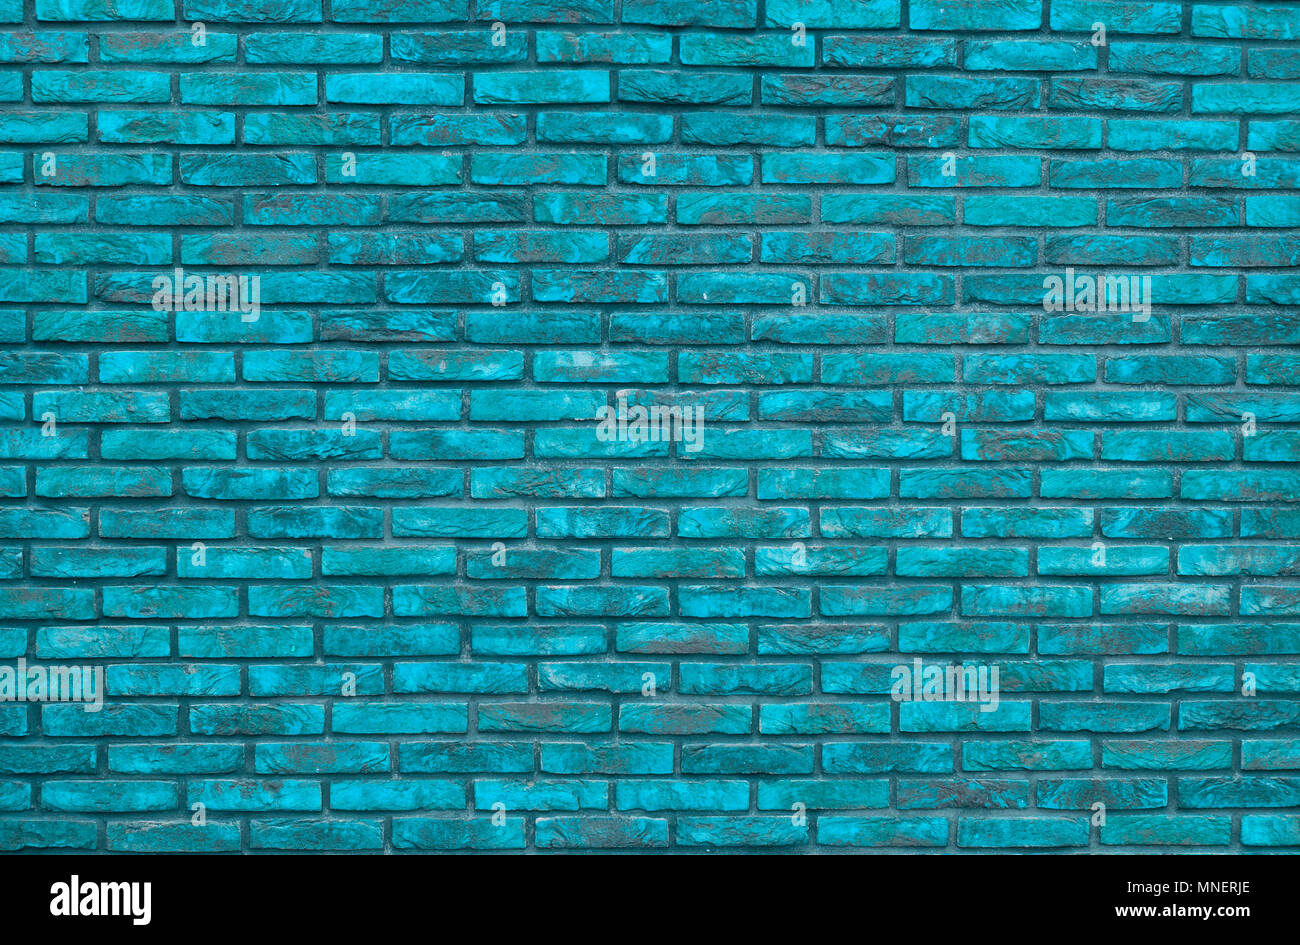 Vibrant Blue Brick Wall Background Wallpaper Bricks Pattern Texture